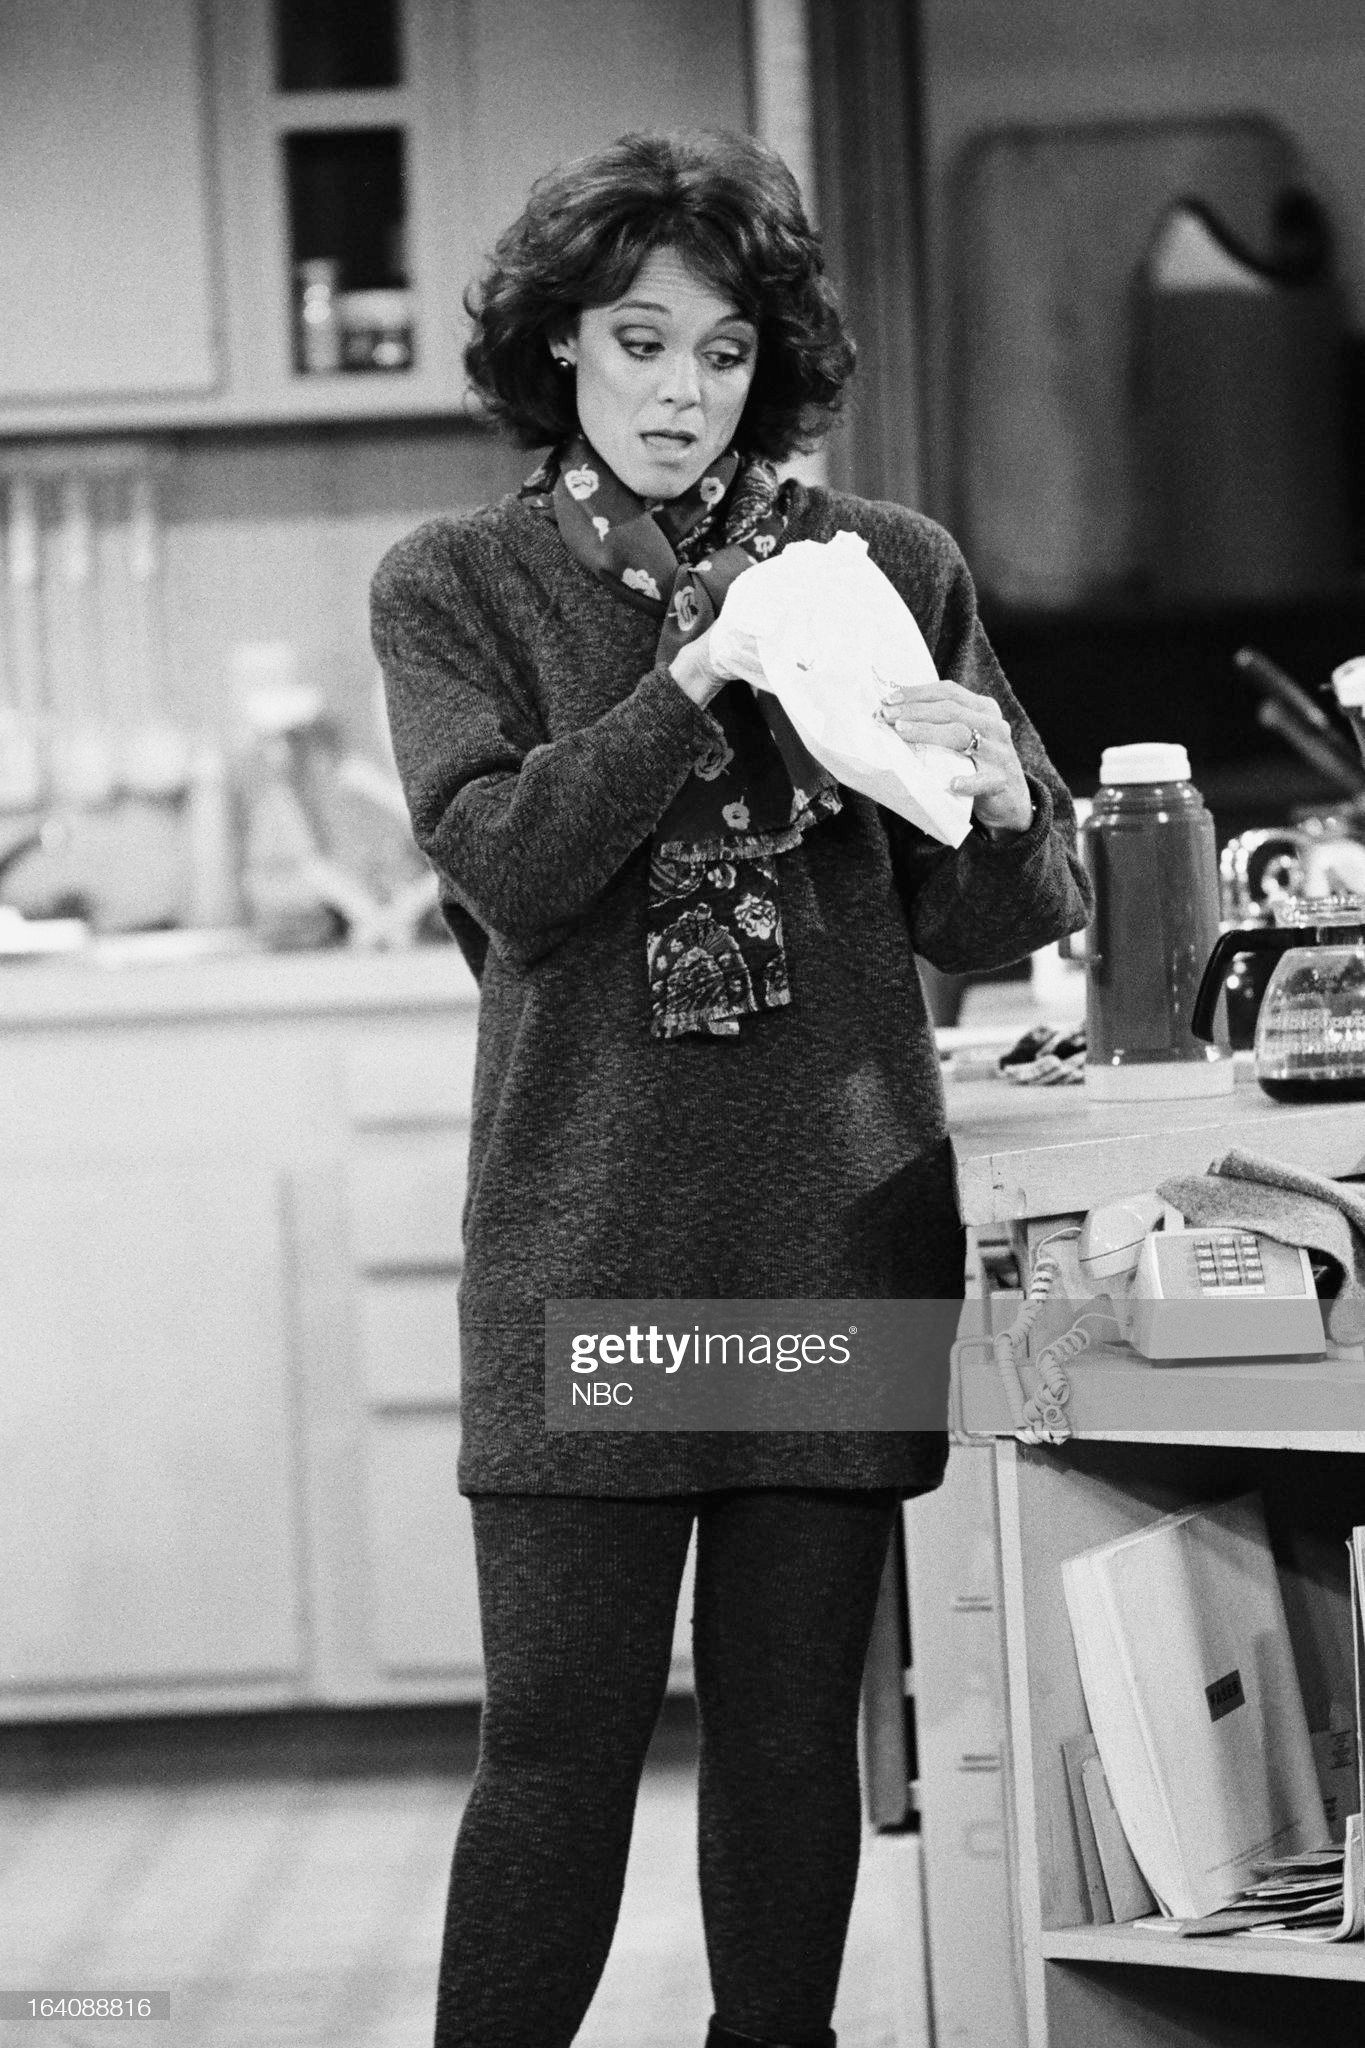 bad-timing-episode-214-pictured-valerie-harper-as-valerie-hogan-picture-id164088816